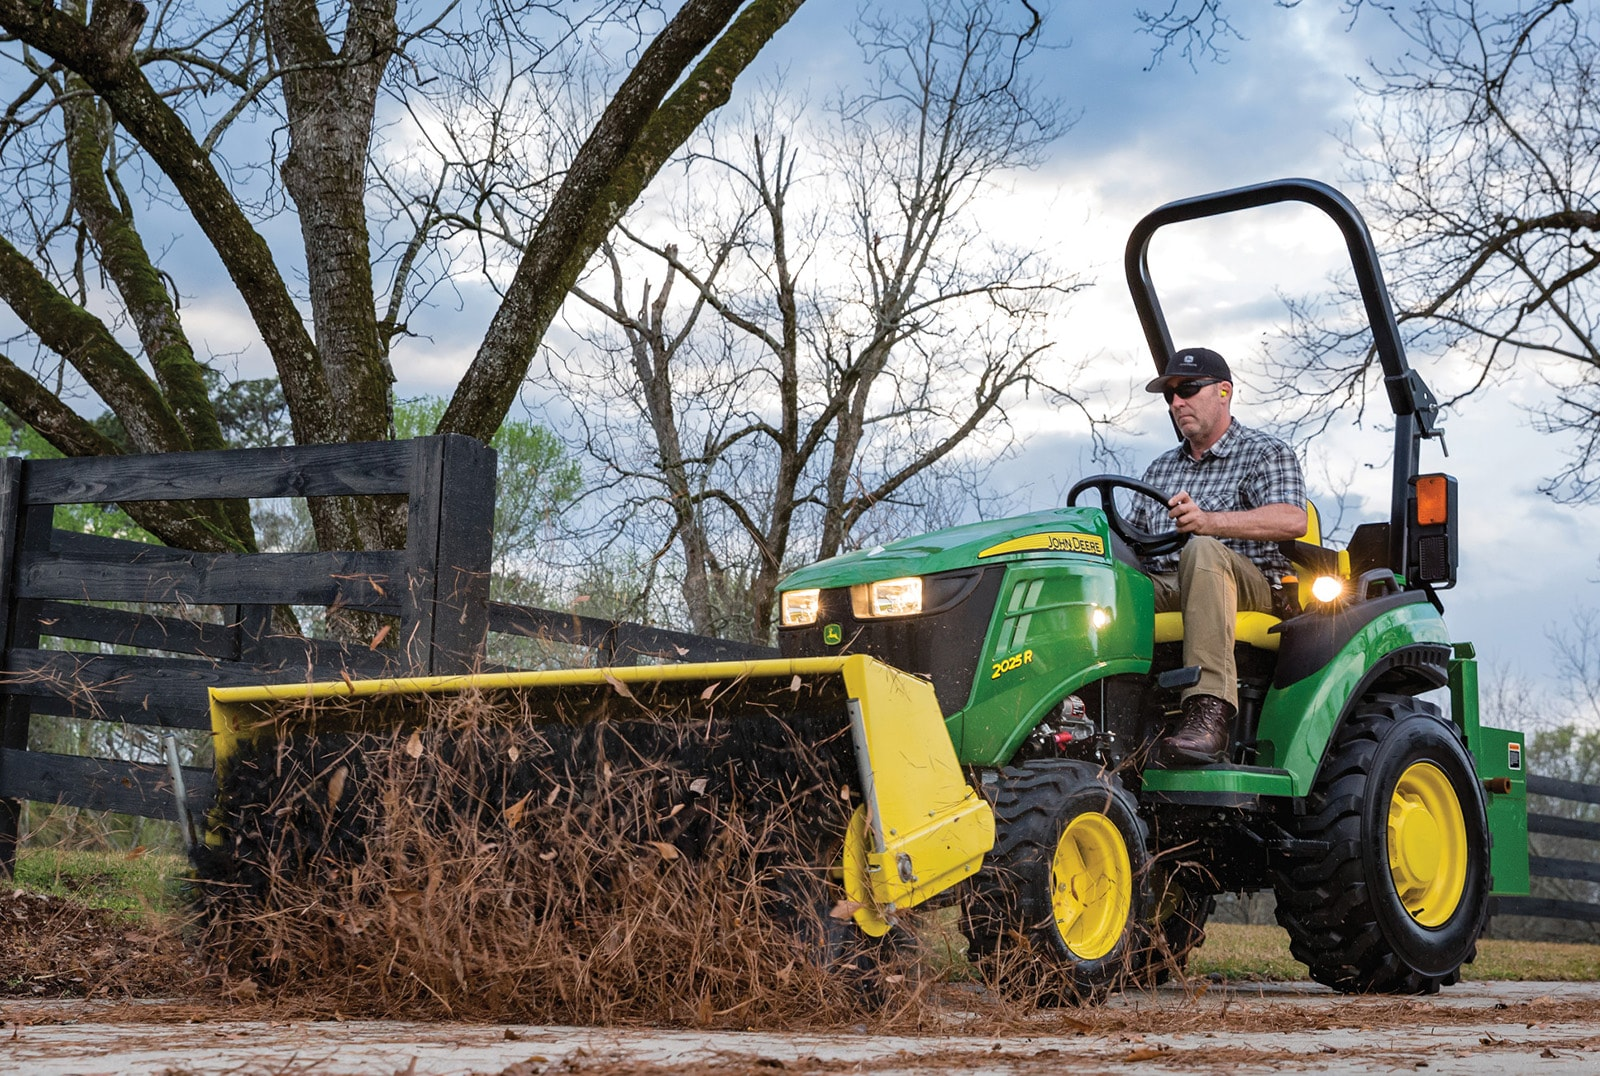 Compact & Utility Tractor Specials